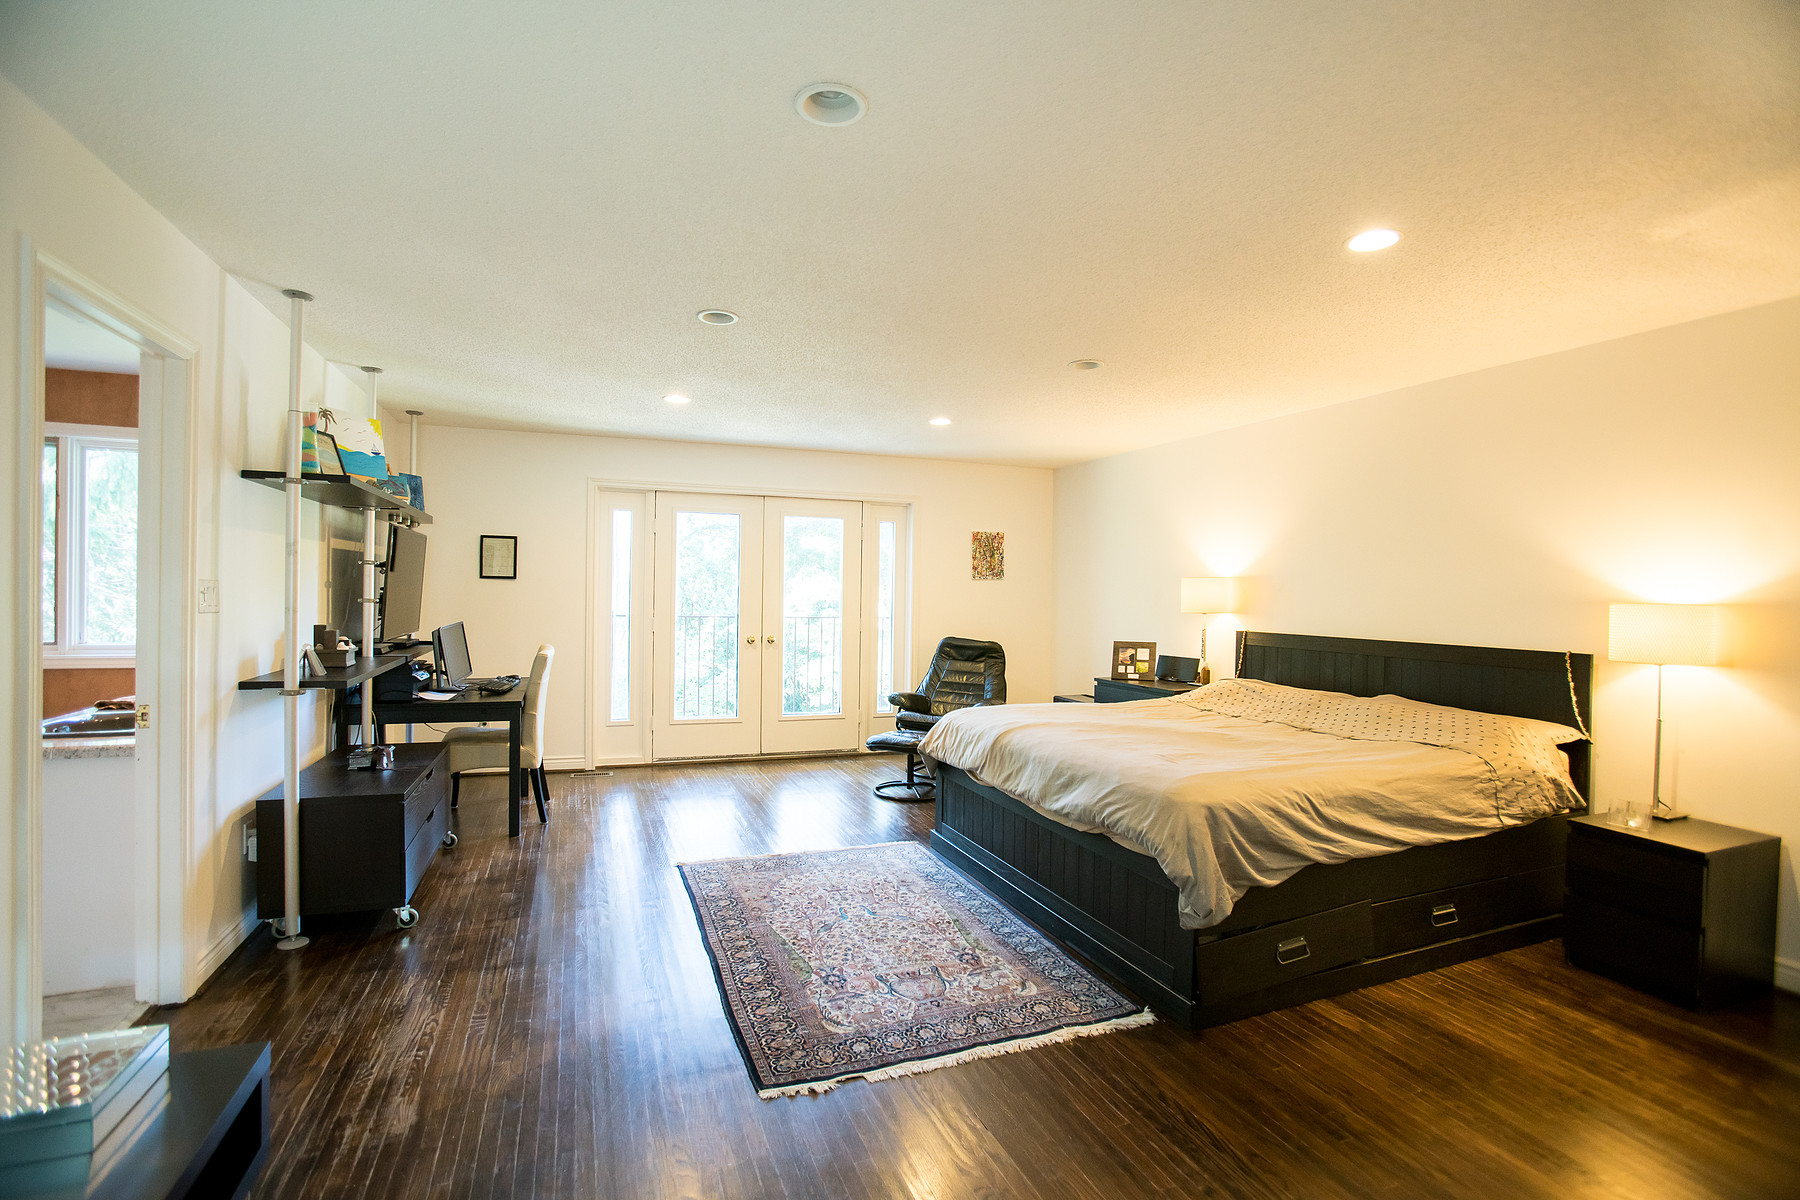 Additional photo for property listing at Mississauga, Greater Toronto Area 1402 Lorne Park Rd Mississauga, Ontario L5H3B3 Canada